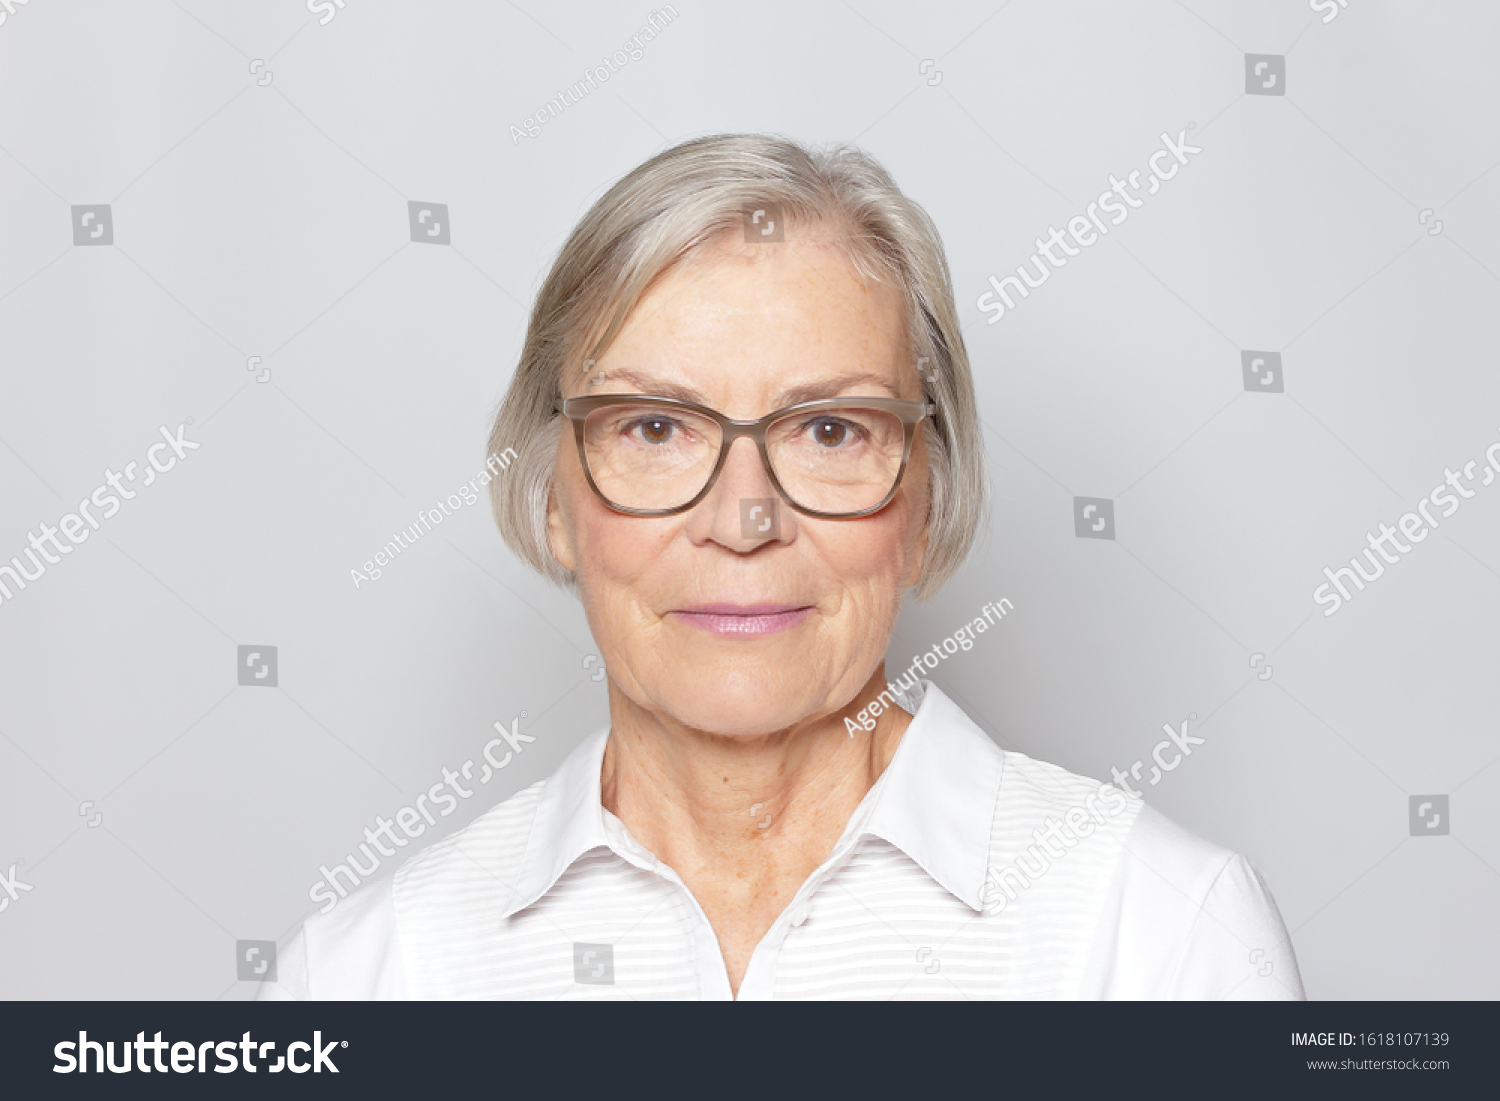 Portrait picture of a senior woman wearing glasses on neutral gray background. #1618107139